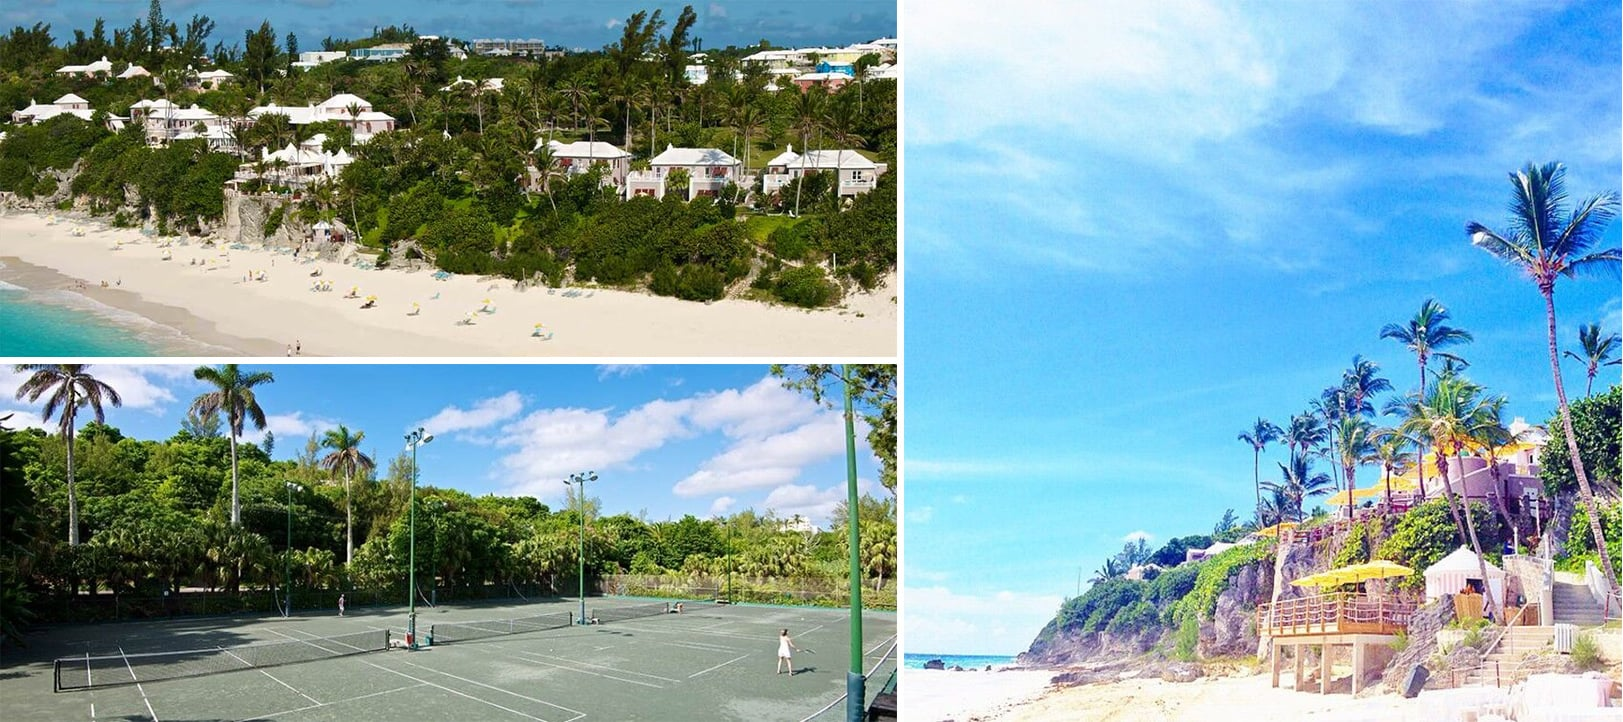 CORAL BEACH & TENNIS CLUB, BERMUDA